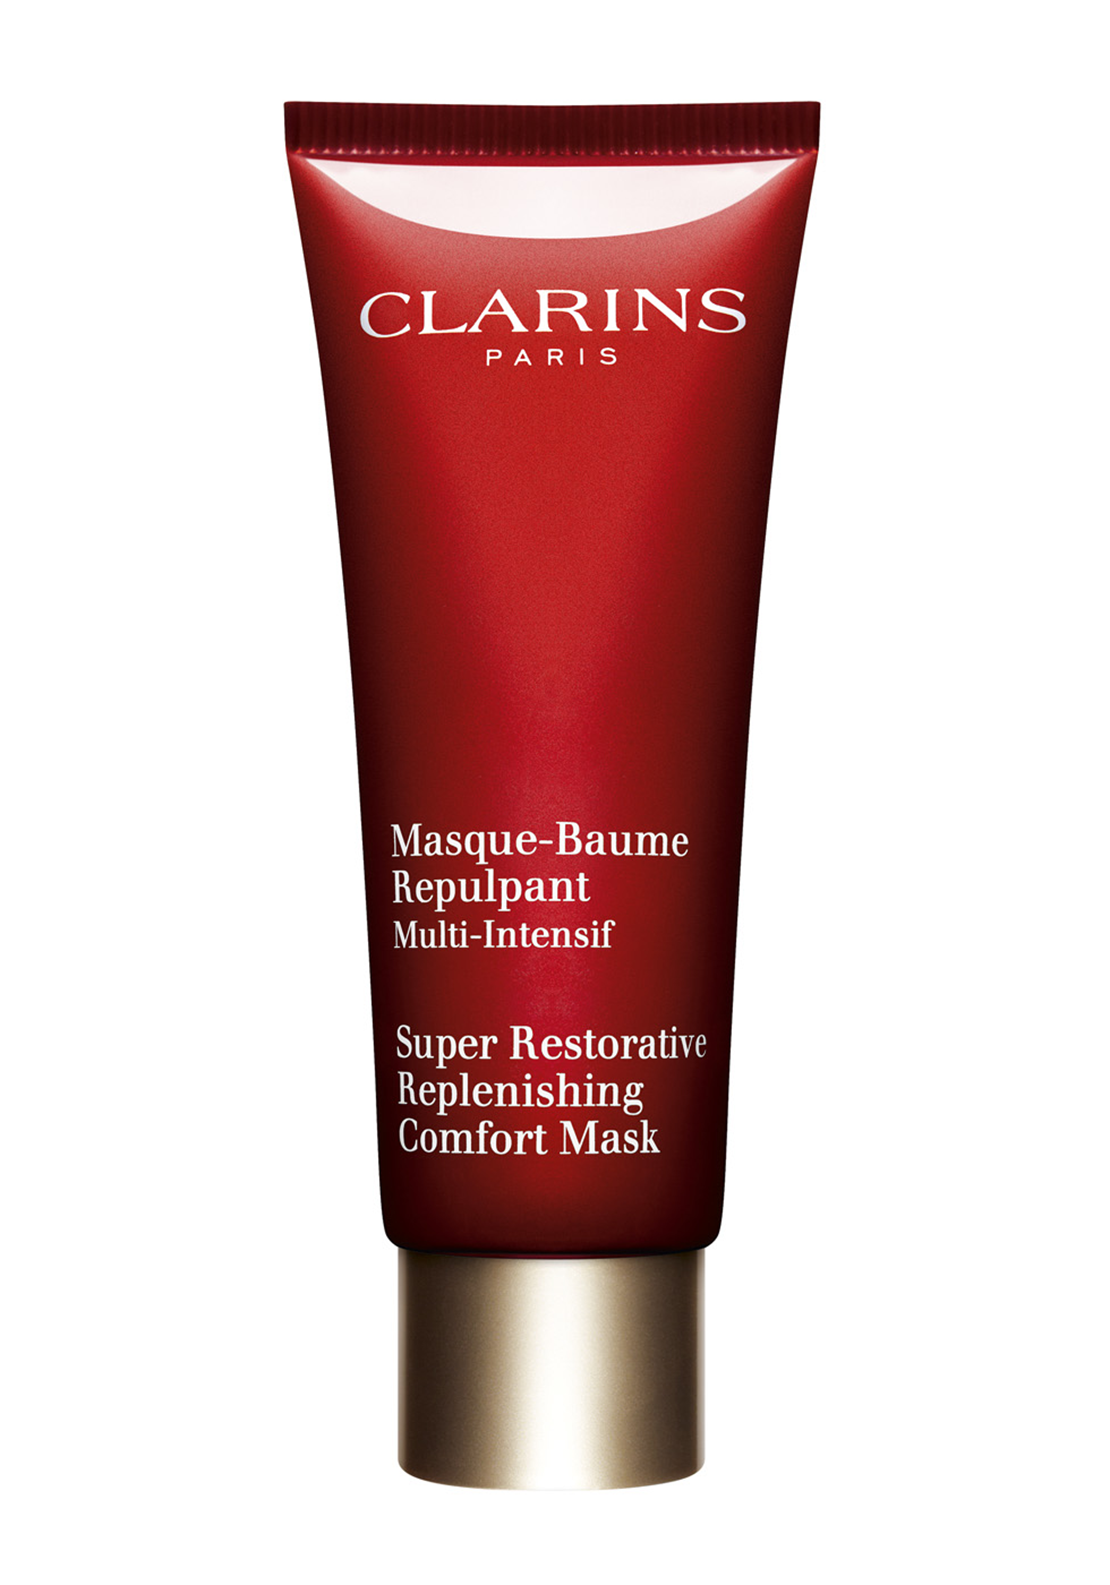 Clarins Super Restorative Replenishing Comfort Mask, 75ml